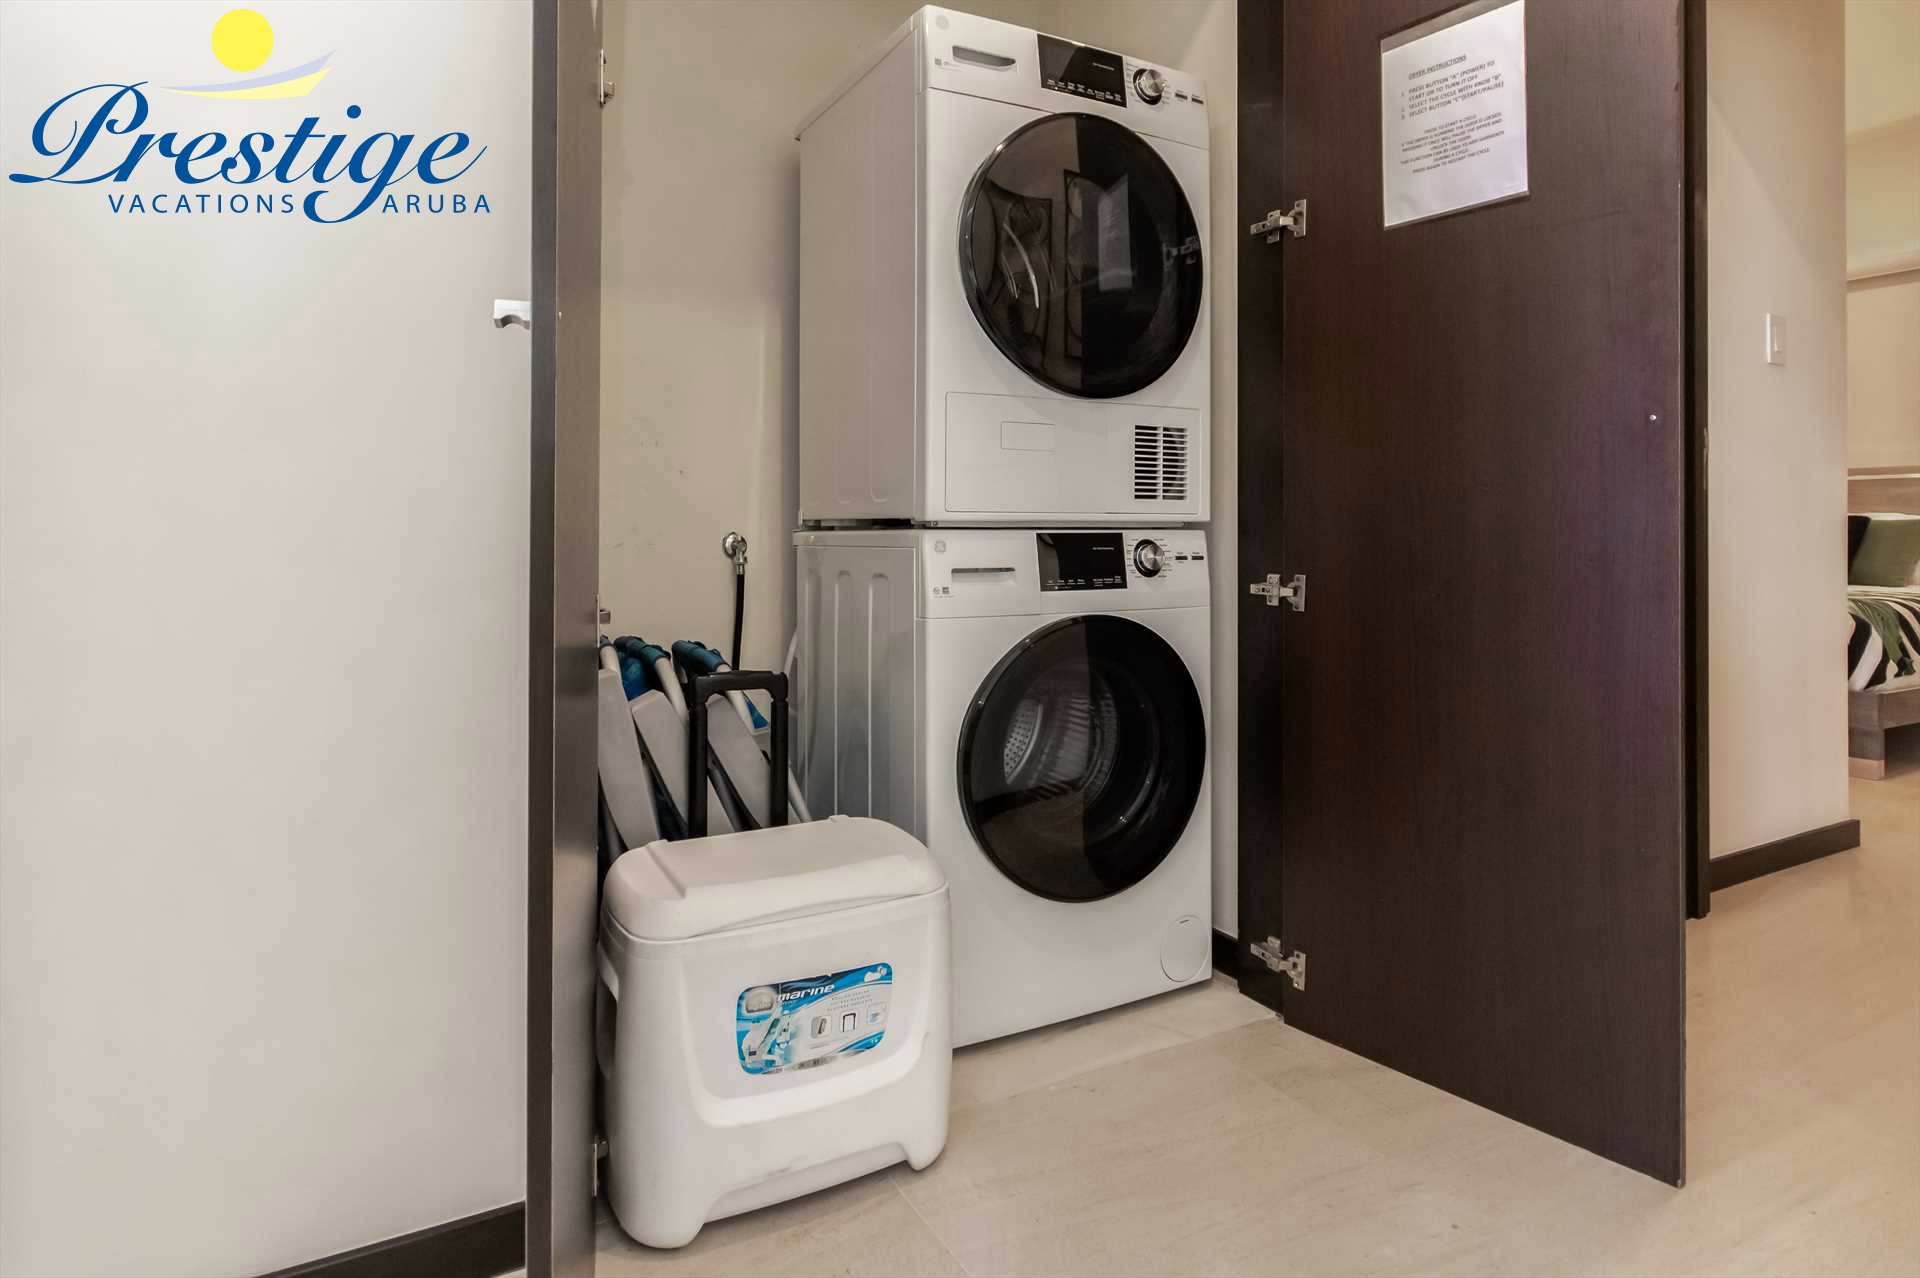 In-room washer and dryer are all available for your comfort